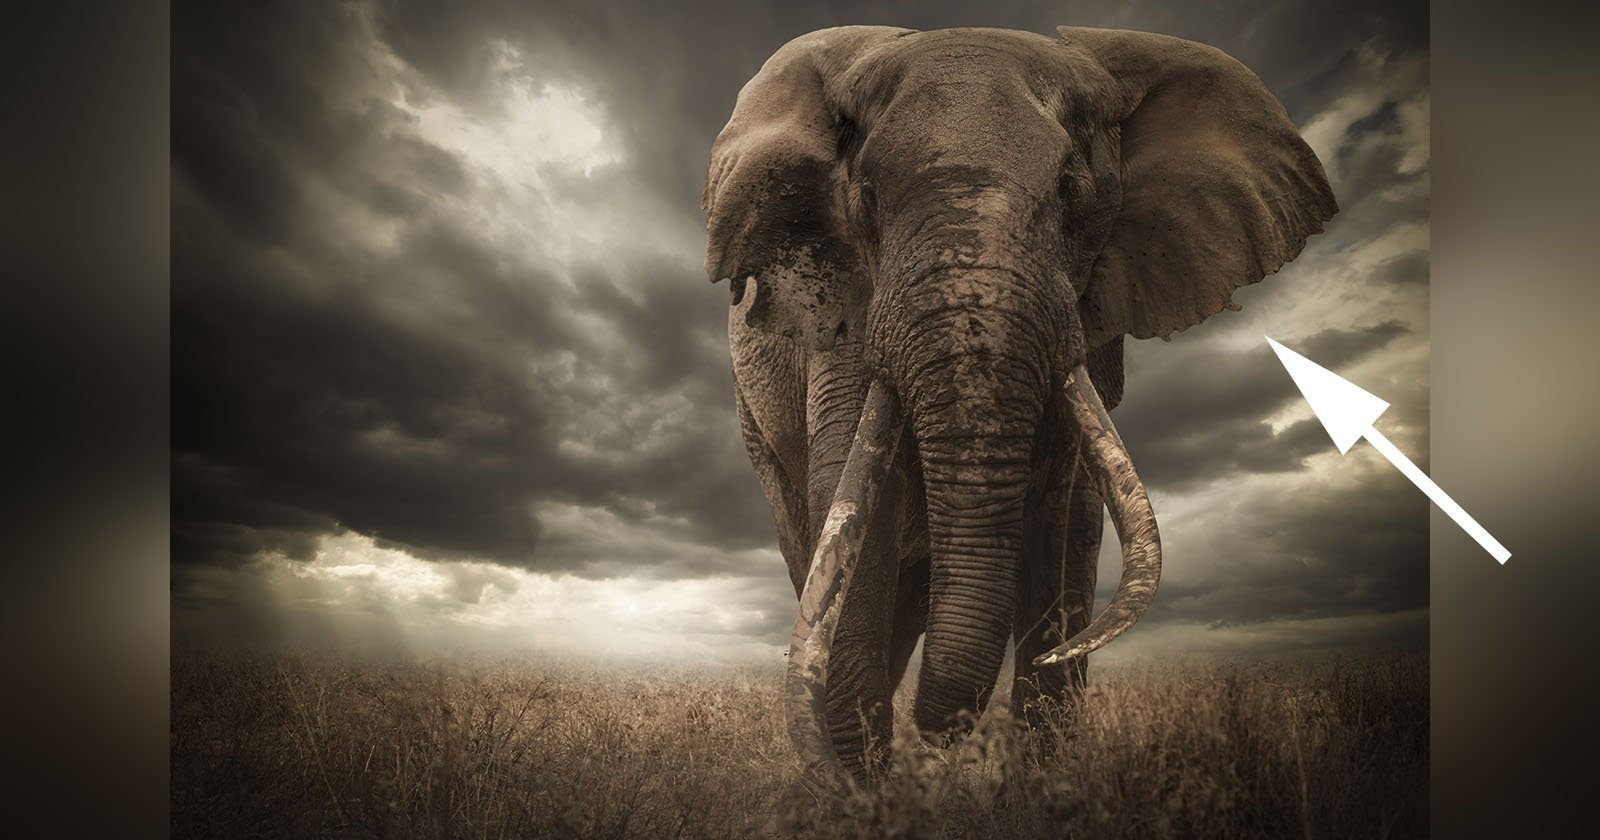 Wildlife Photo Contest Winner Disqualified Over Elephant's Ears